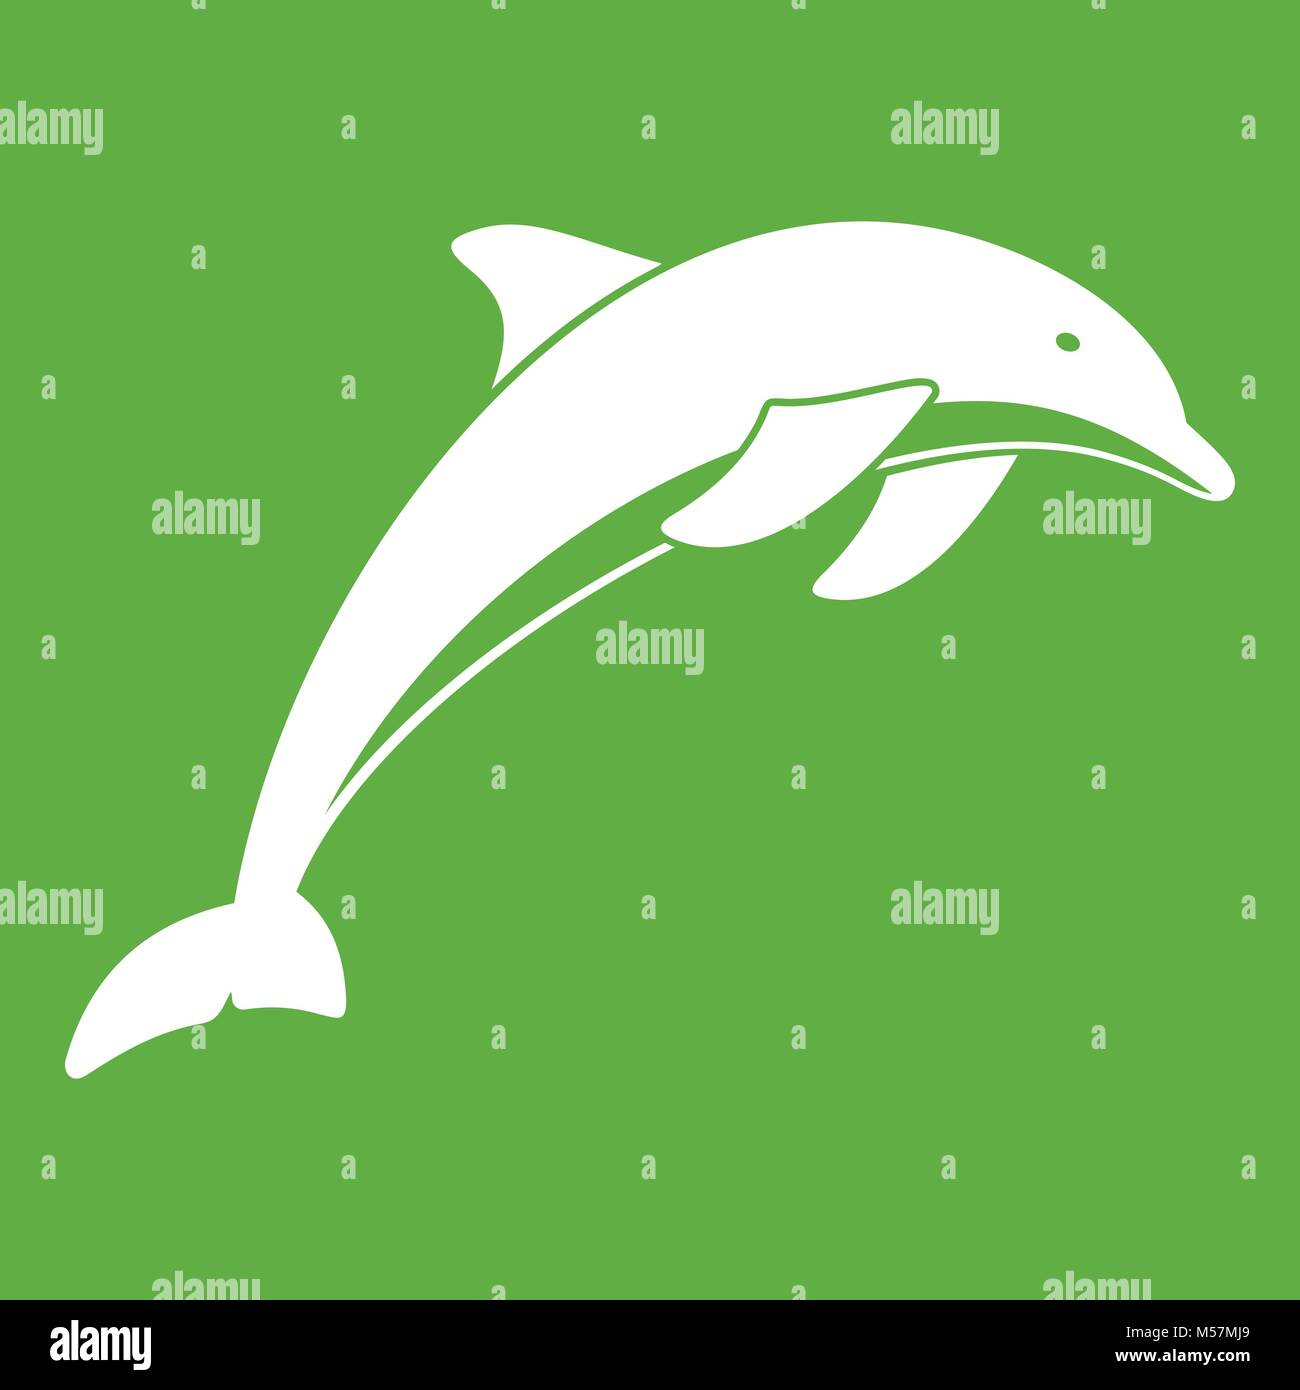 Dolphin Symbol Stock Photos & Dolphin Symbol Stock Images - Alamy